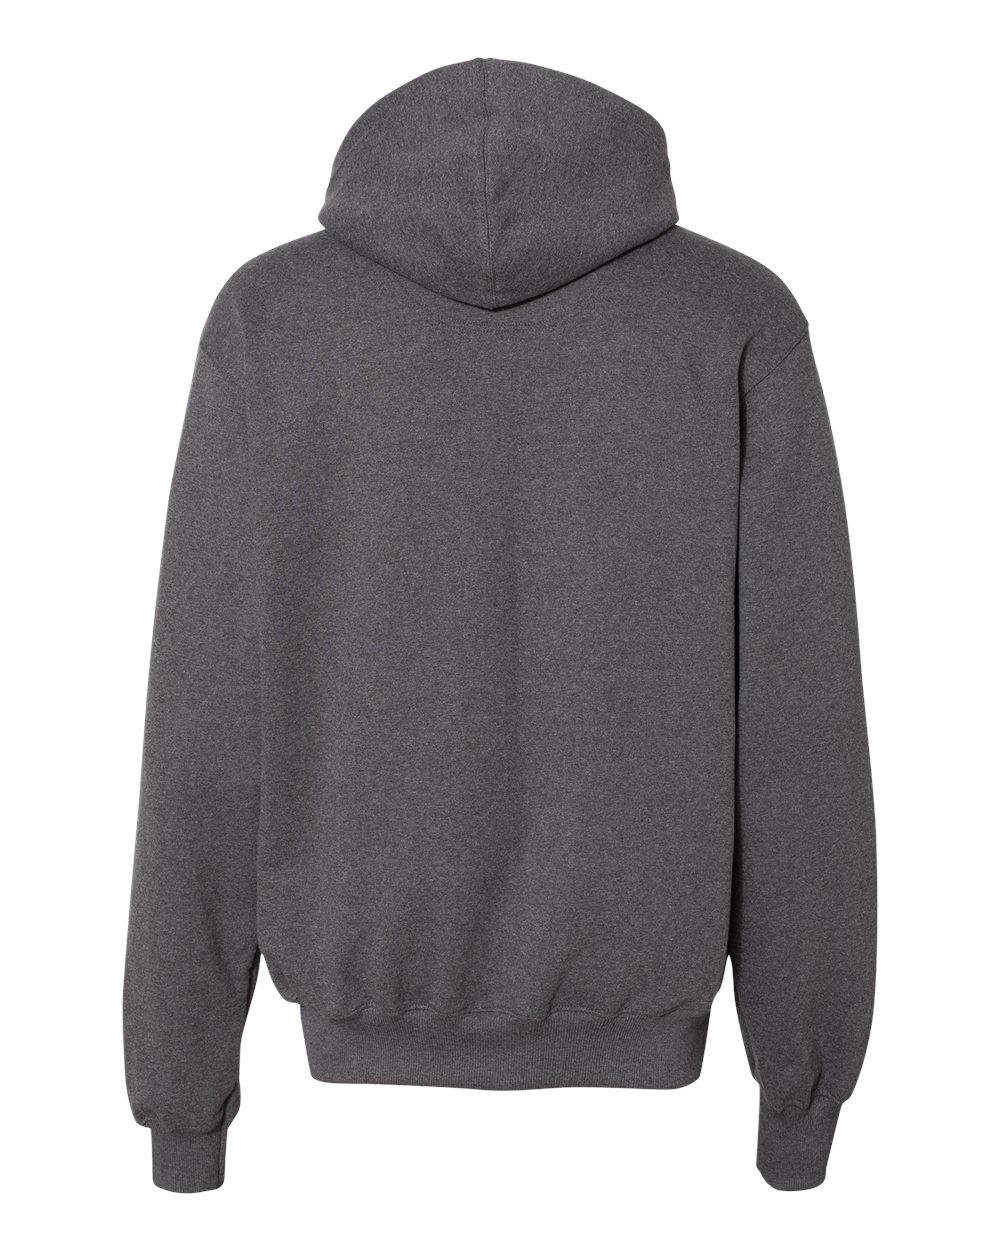 Champion-Mens-Cotton-Max-Hooded-Quarter-Zip-Sweatshirt-Pullover-S185-up-to-3XL miniature 10